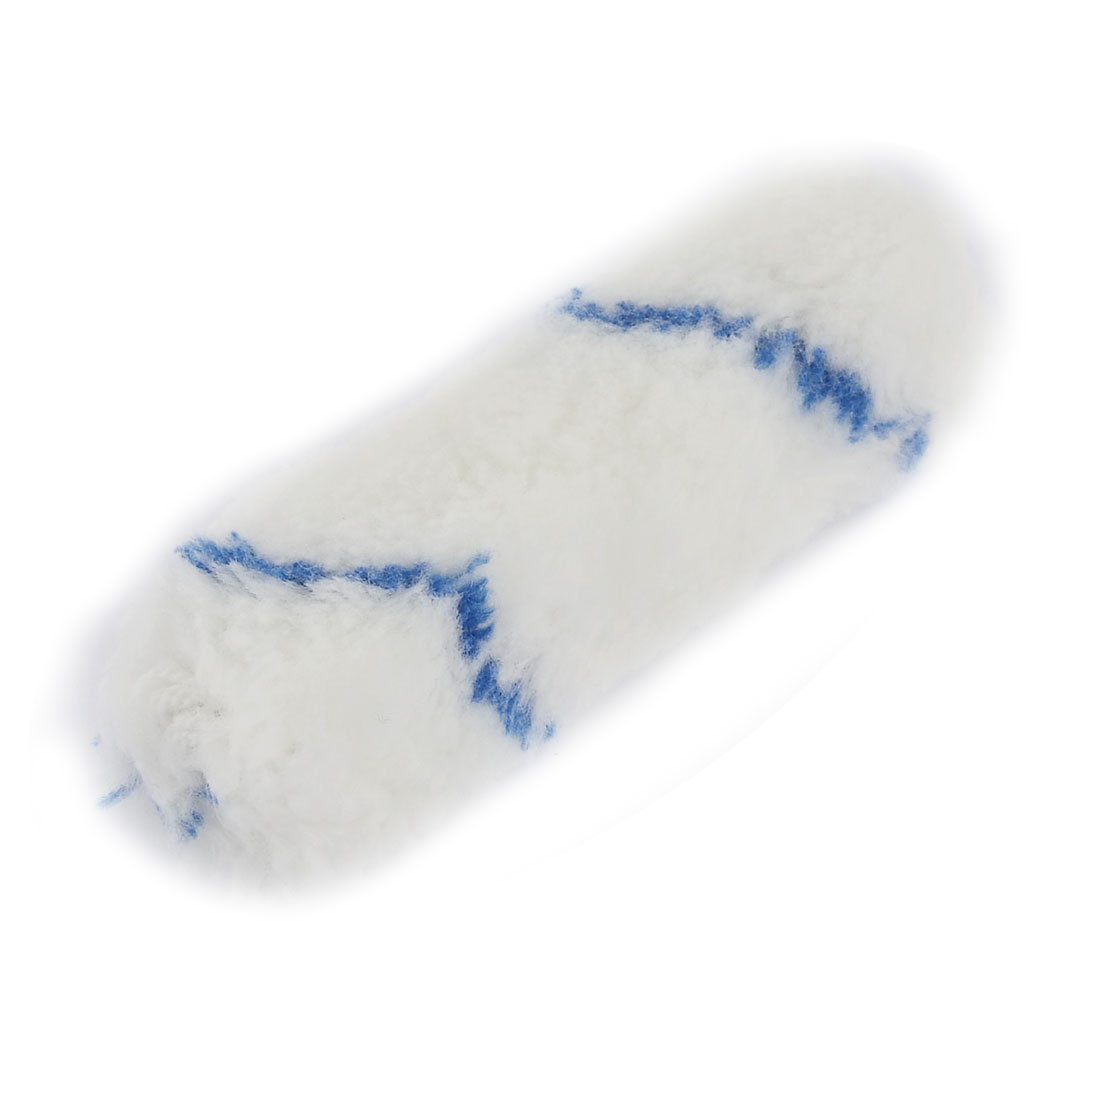 Home Floor Wall Painting Tool Plush Sleeve Brush Roller Cover White Blue